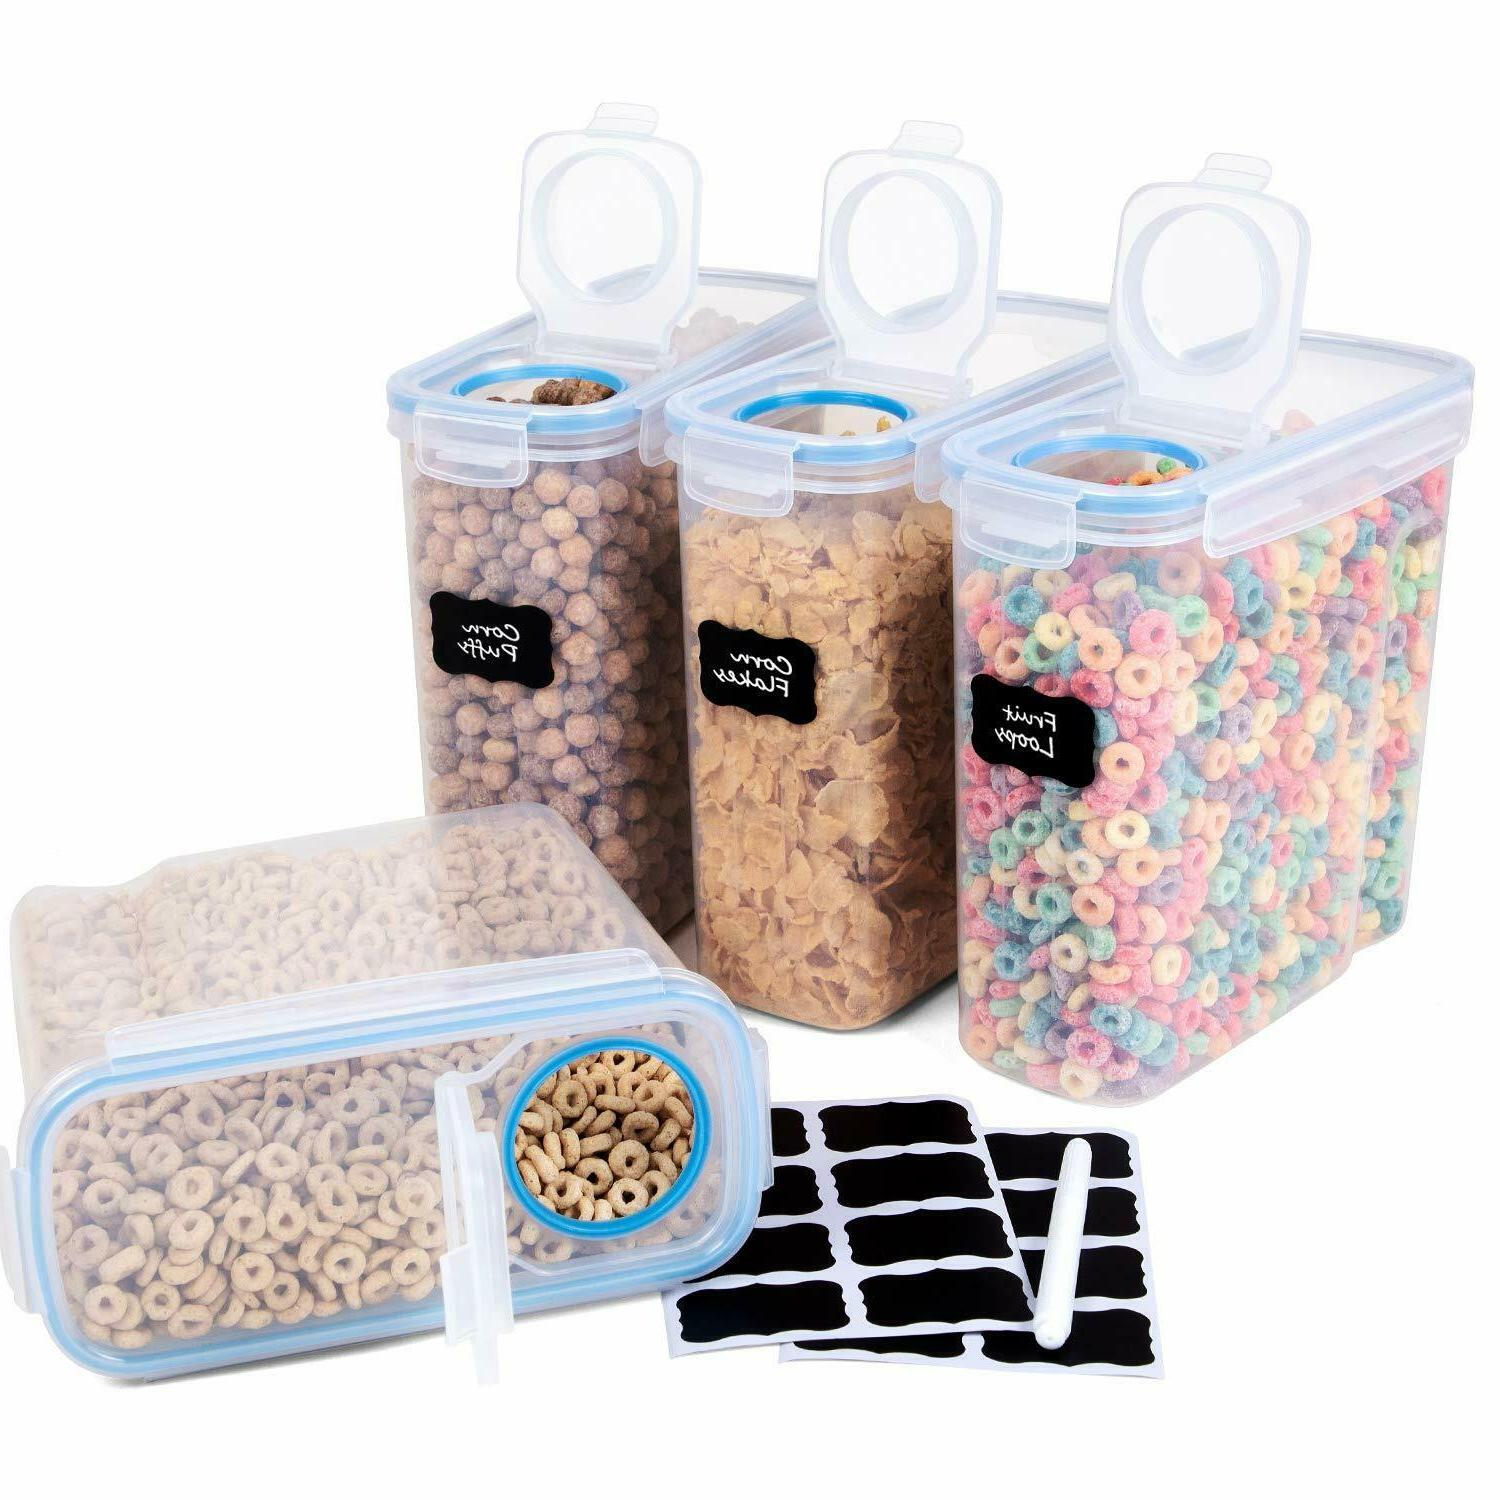 set of 4 cereal container airtight bpa